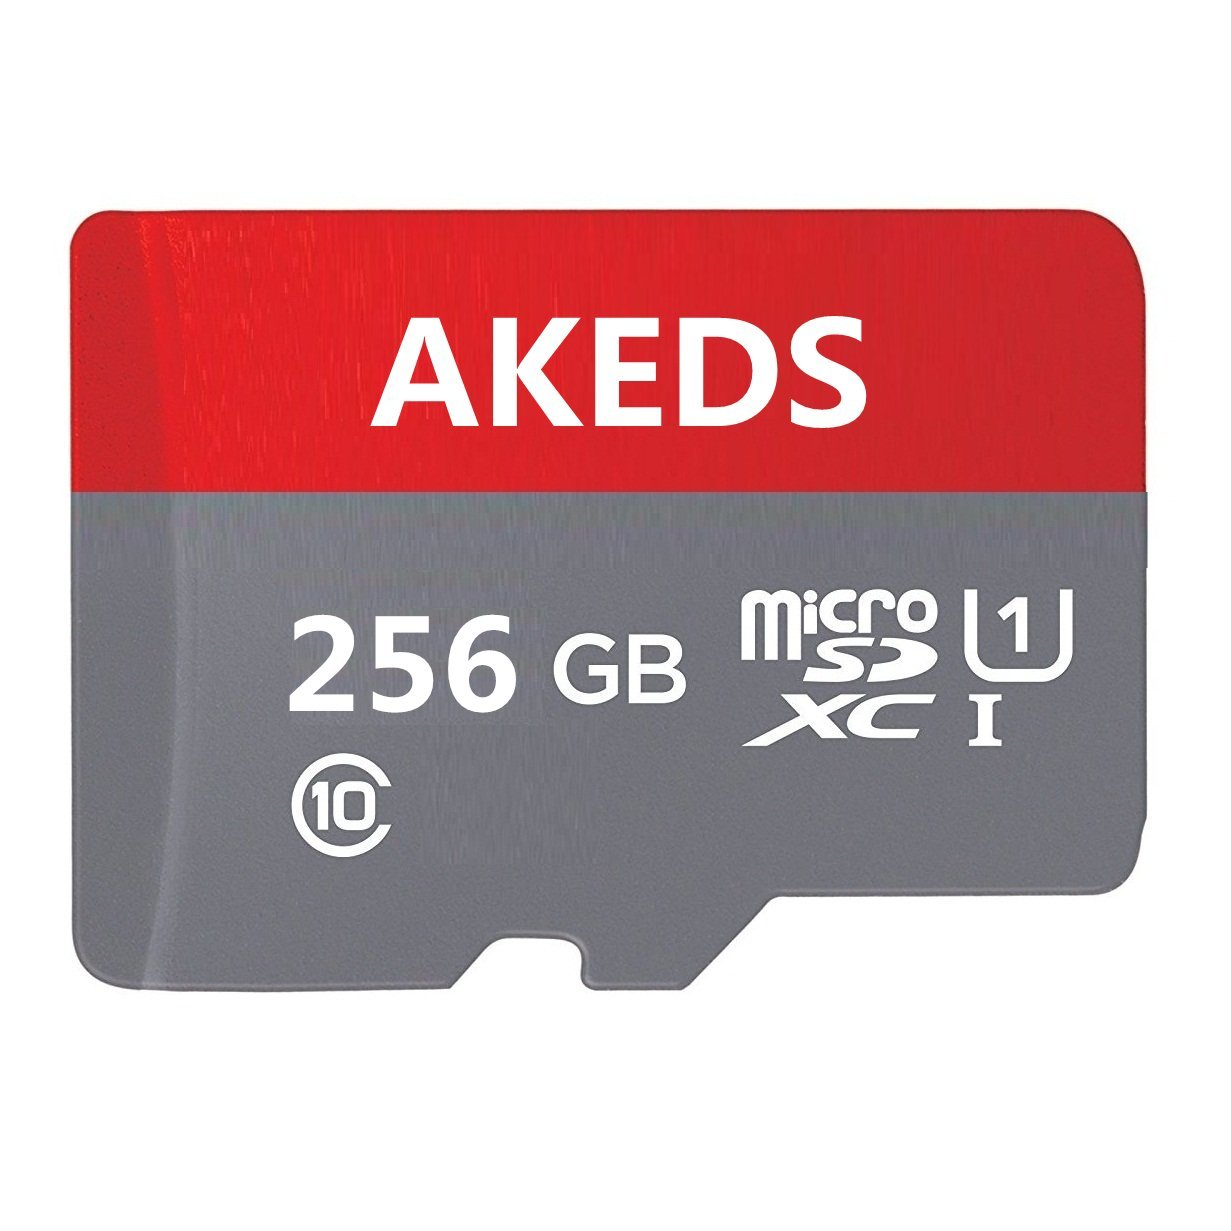 256GB SD Micro Memory Card with A Free Adapter, High Speed 256 GB SD Micro Card Class 10 Memory Card for Memory Expansion, Movie Music Storage, Portable Carrying, Data Copy and Traffic Recorder Mem Senqploop